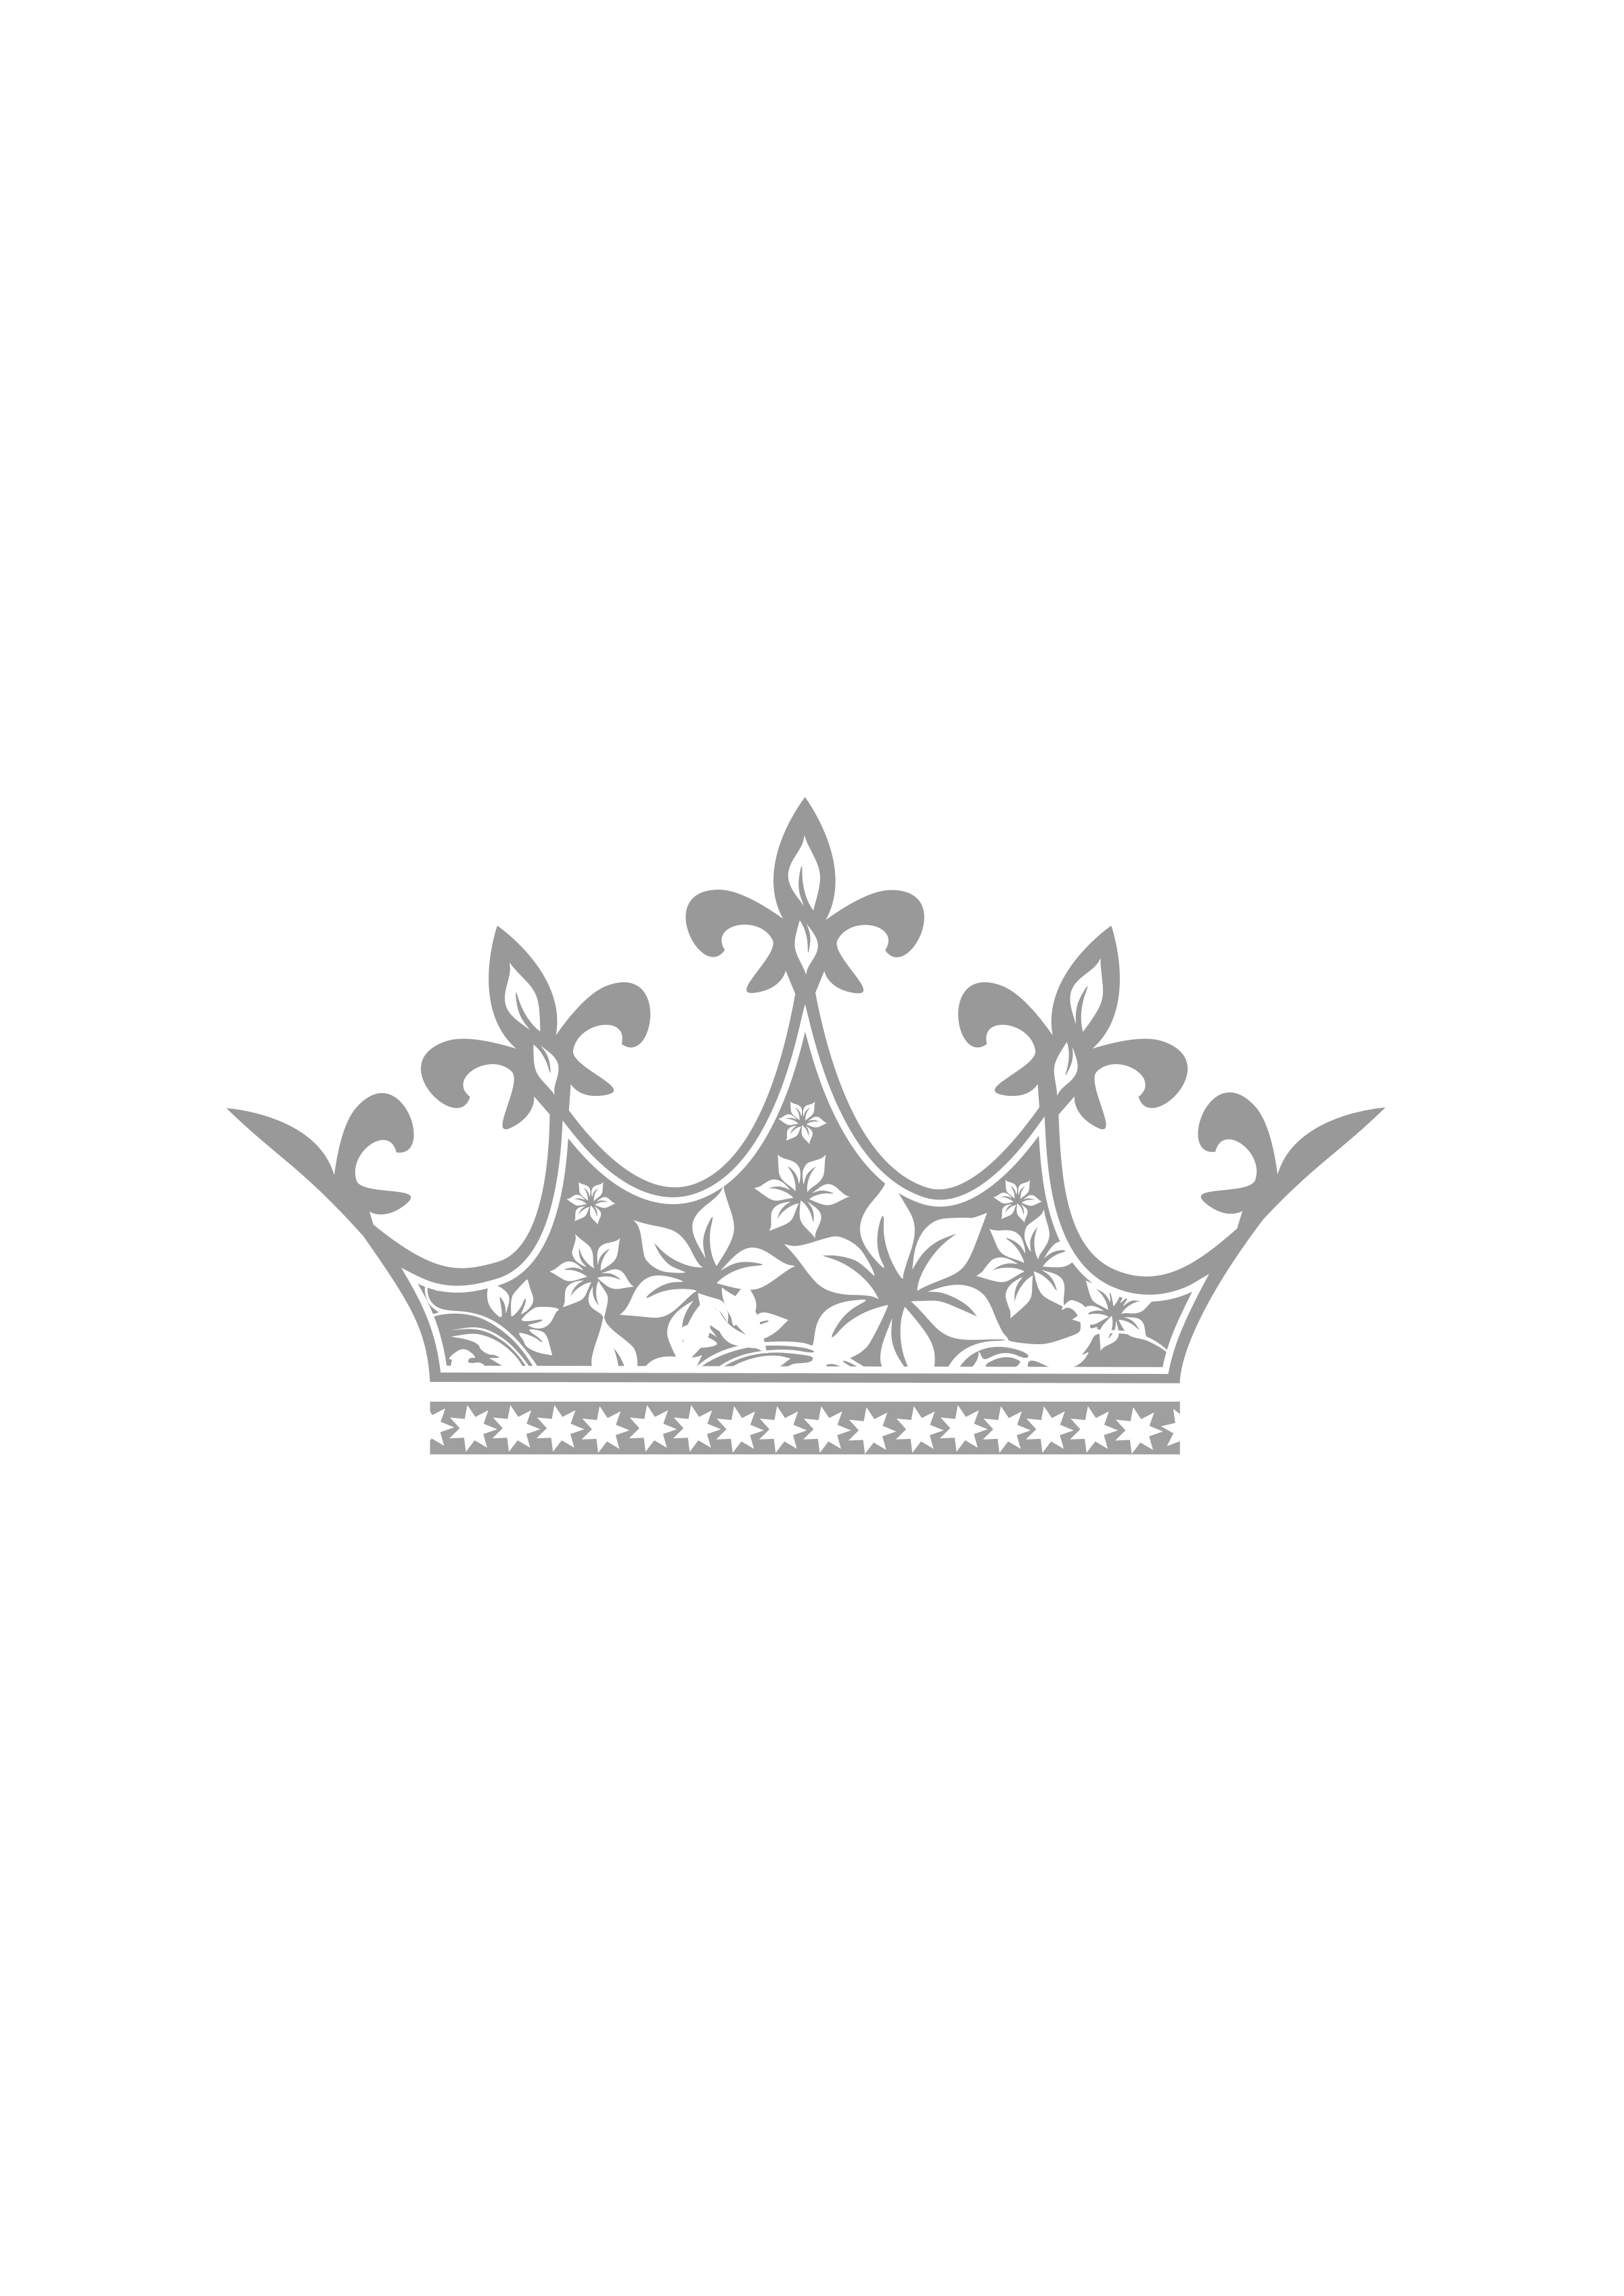 Crown images clipart jpg stock 28+ Collection of Beauty Queen Crown Clipart | High quality, free ... jpg stock